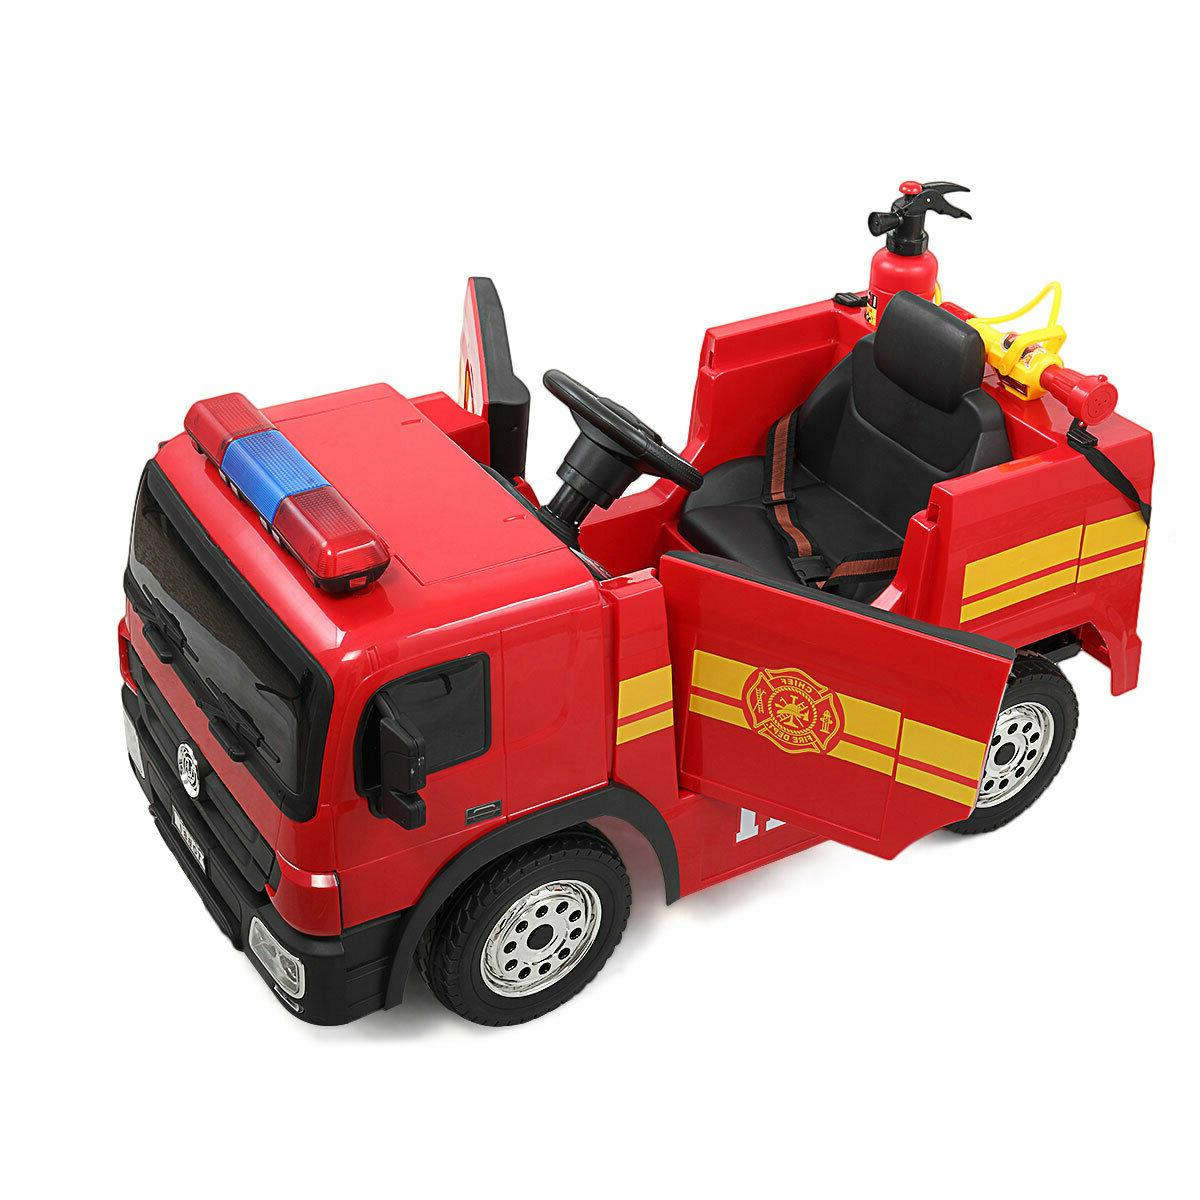 Red Kids Ride Child Play w/ Remote Control